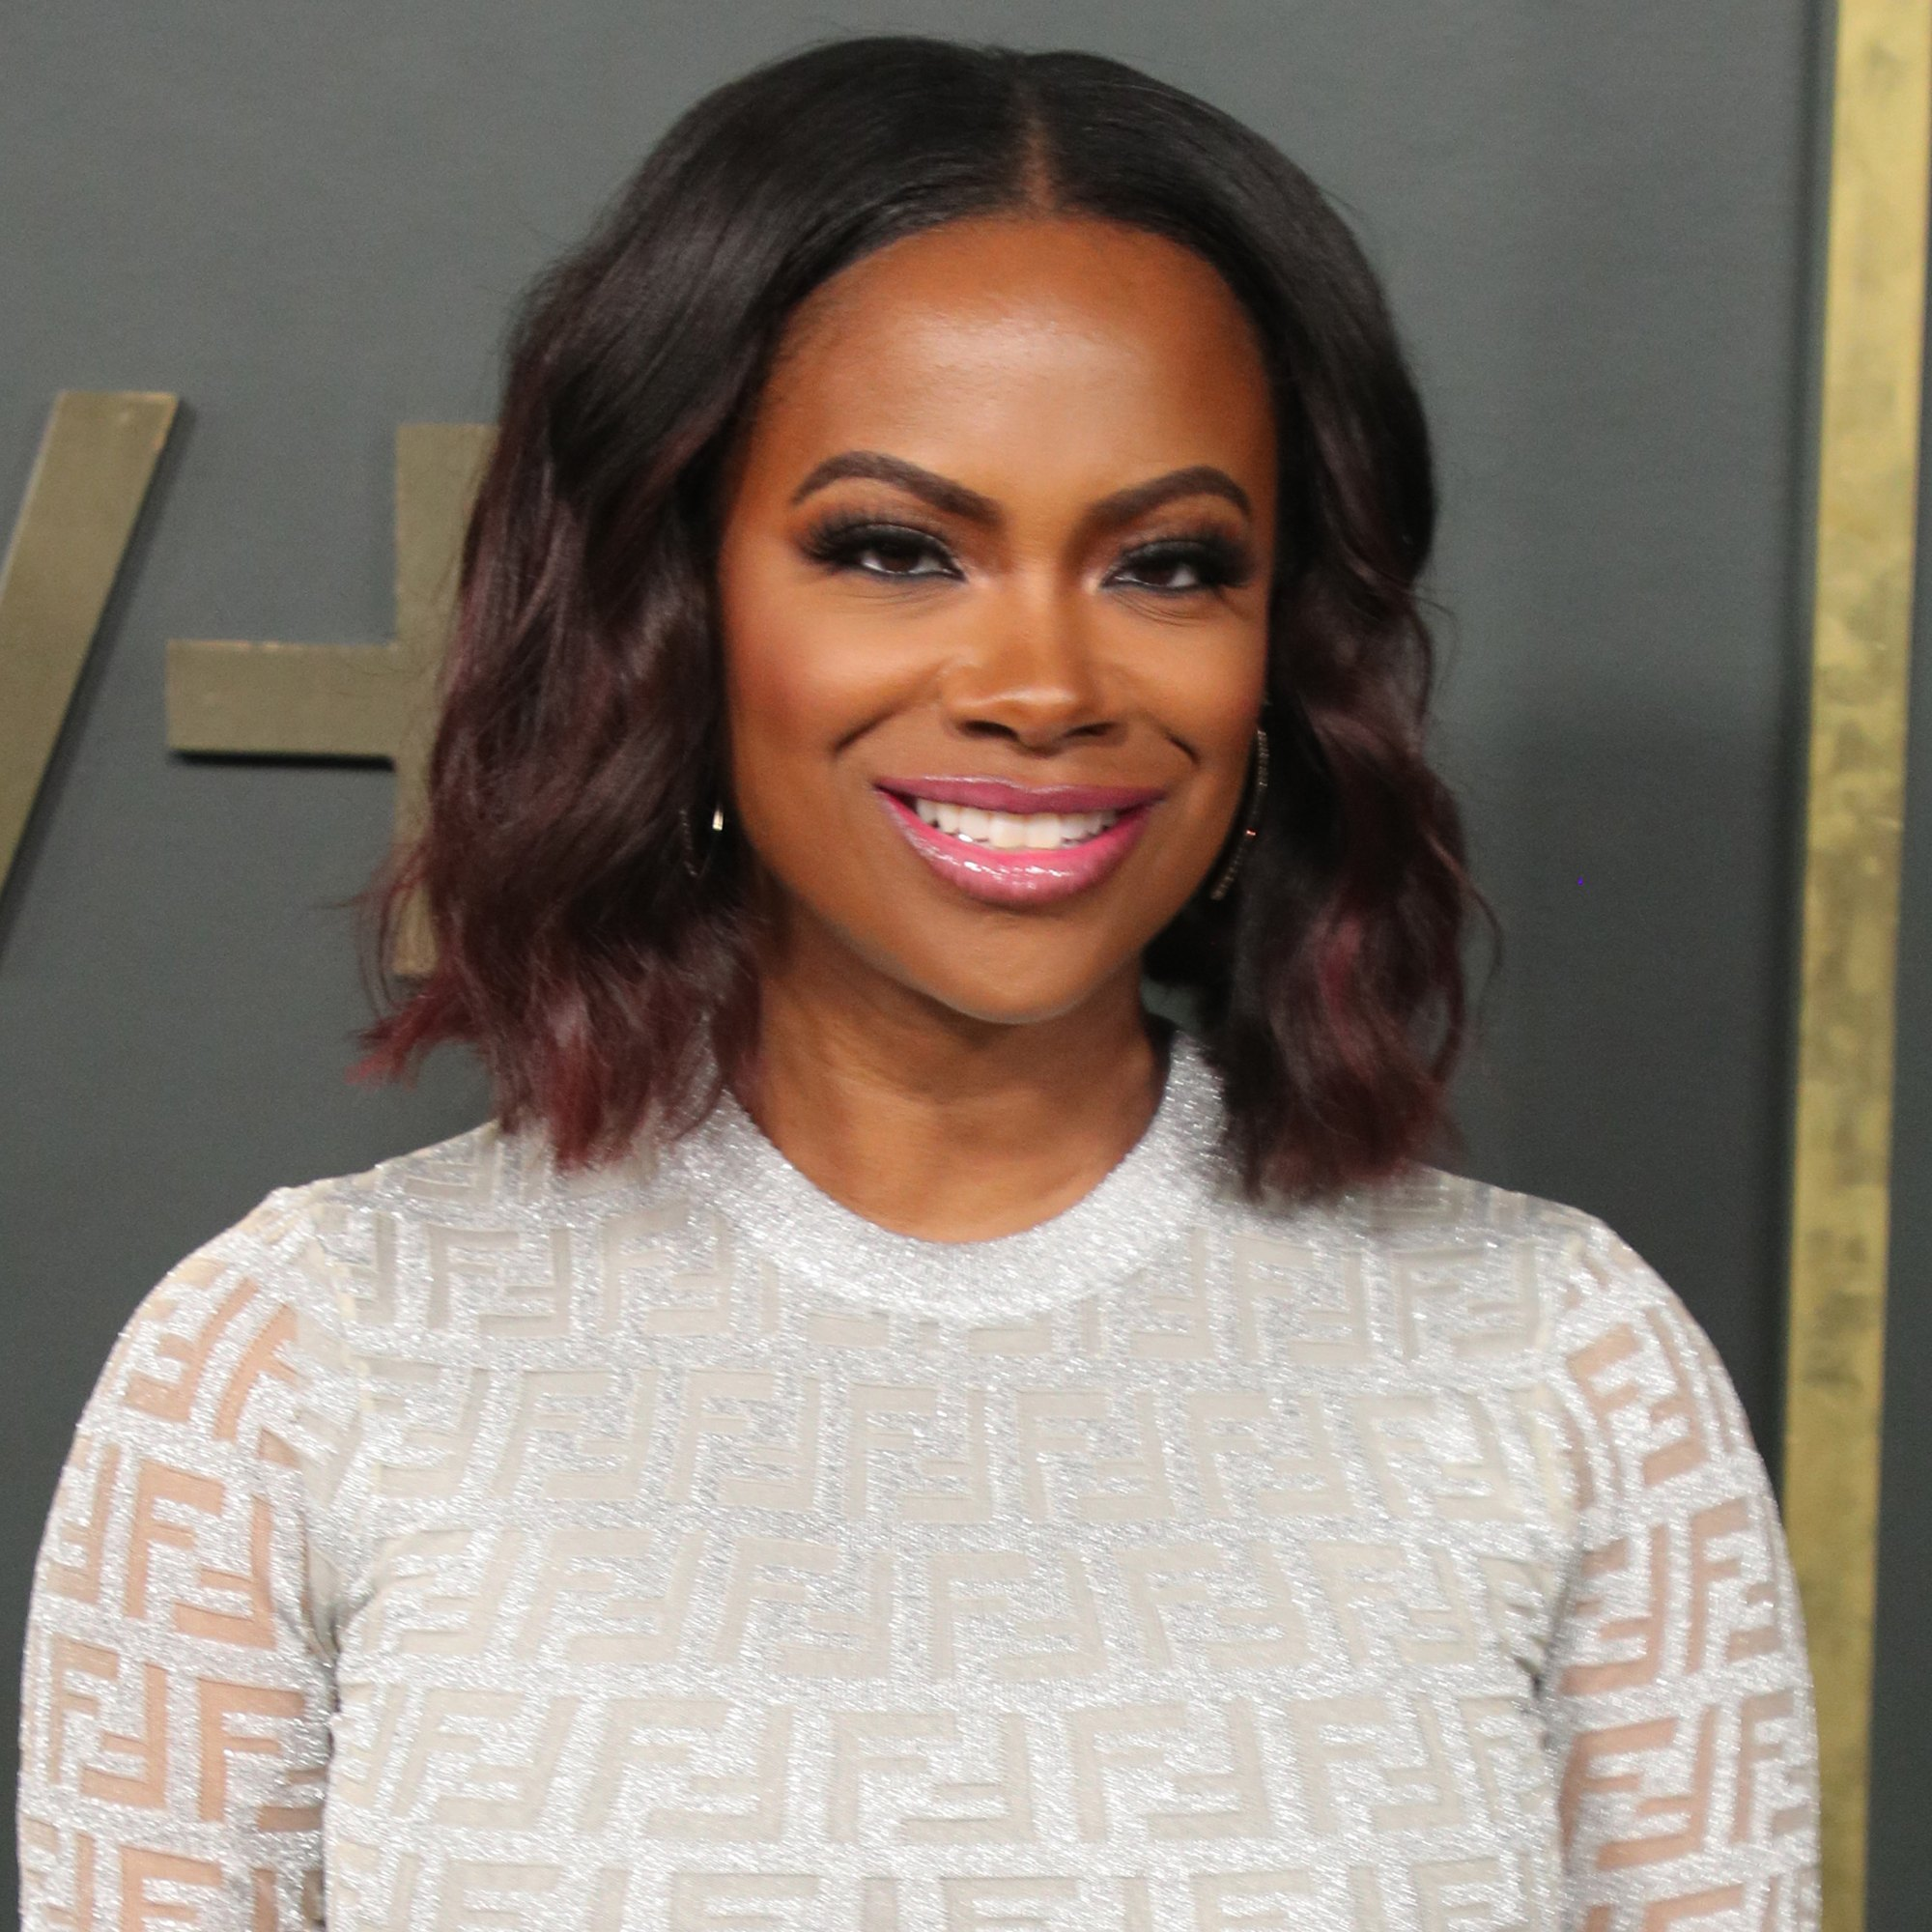 kandi-burruss-wishes-one-of-her-bffs-a-happy-anniversary-see-the-gorgeous-photos